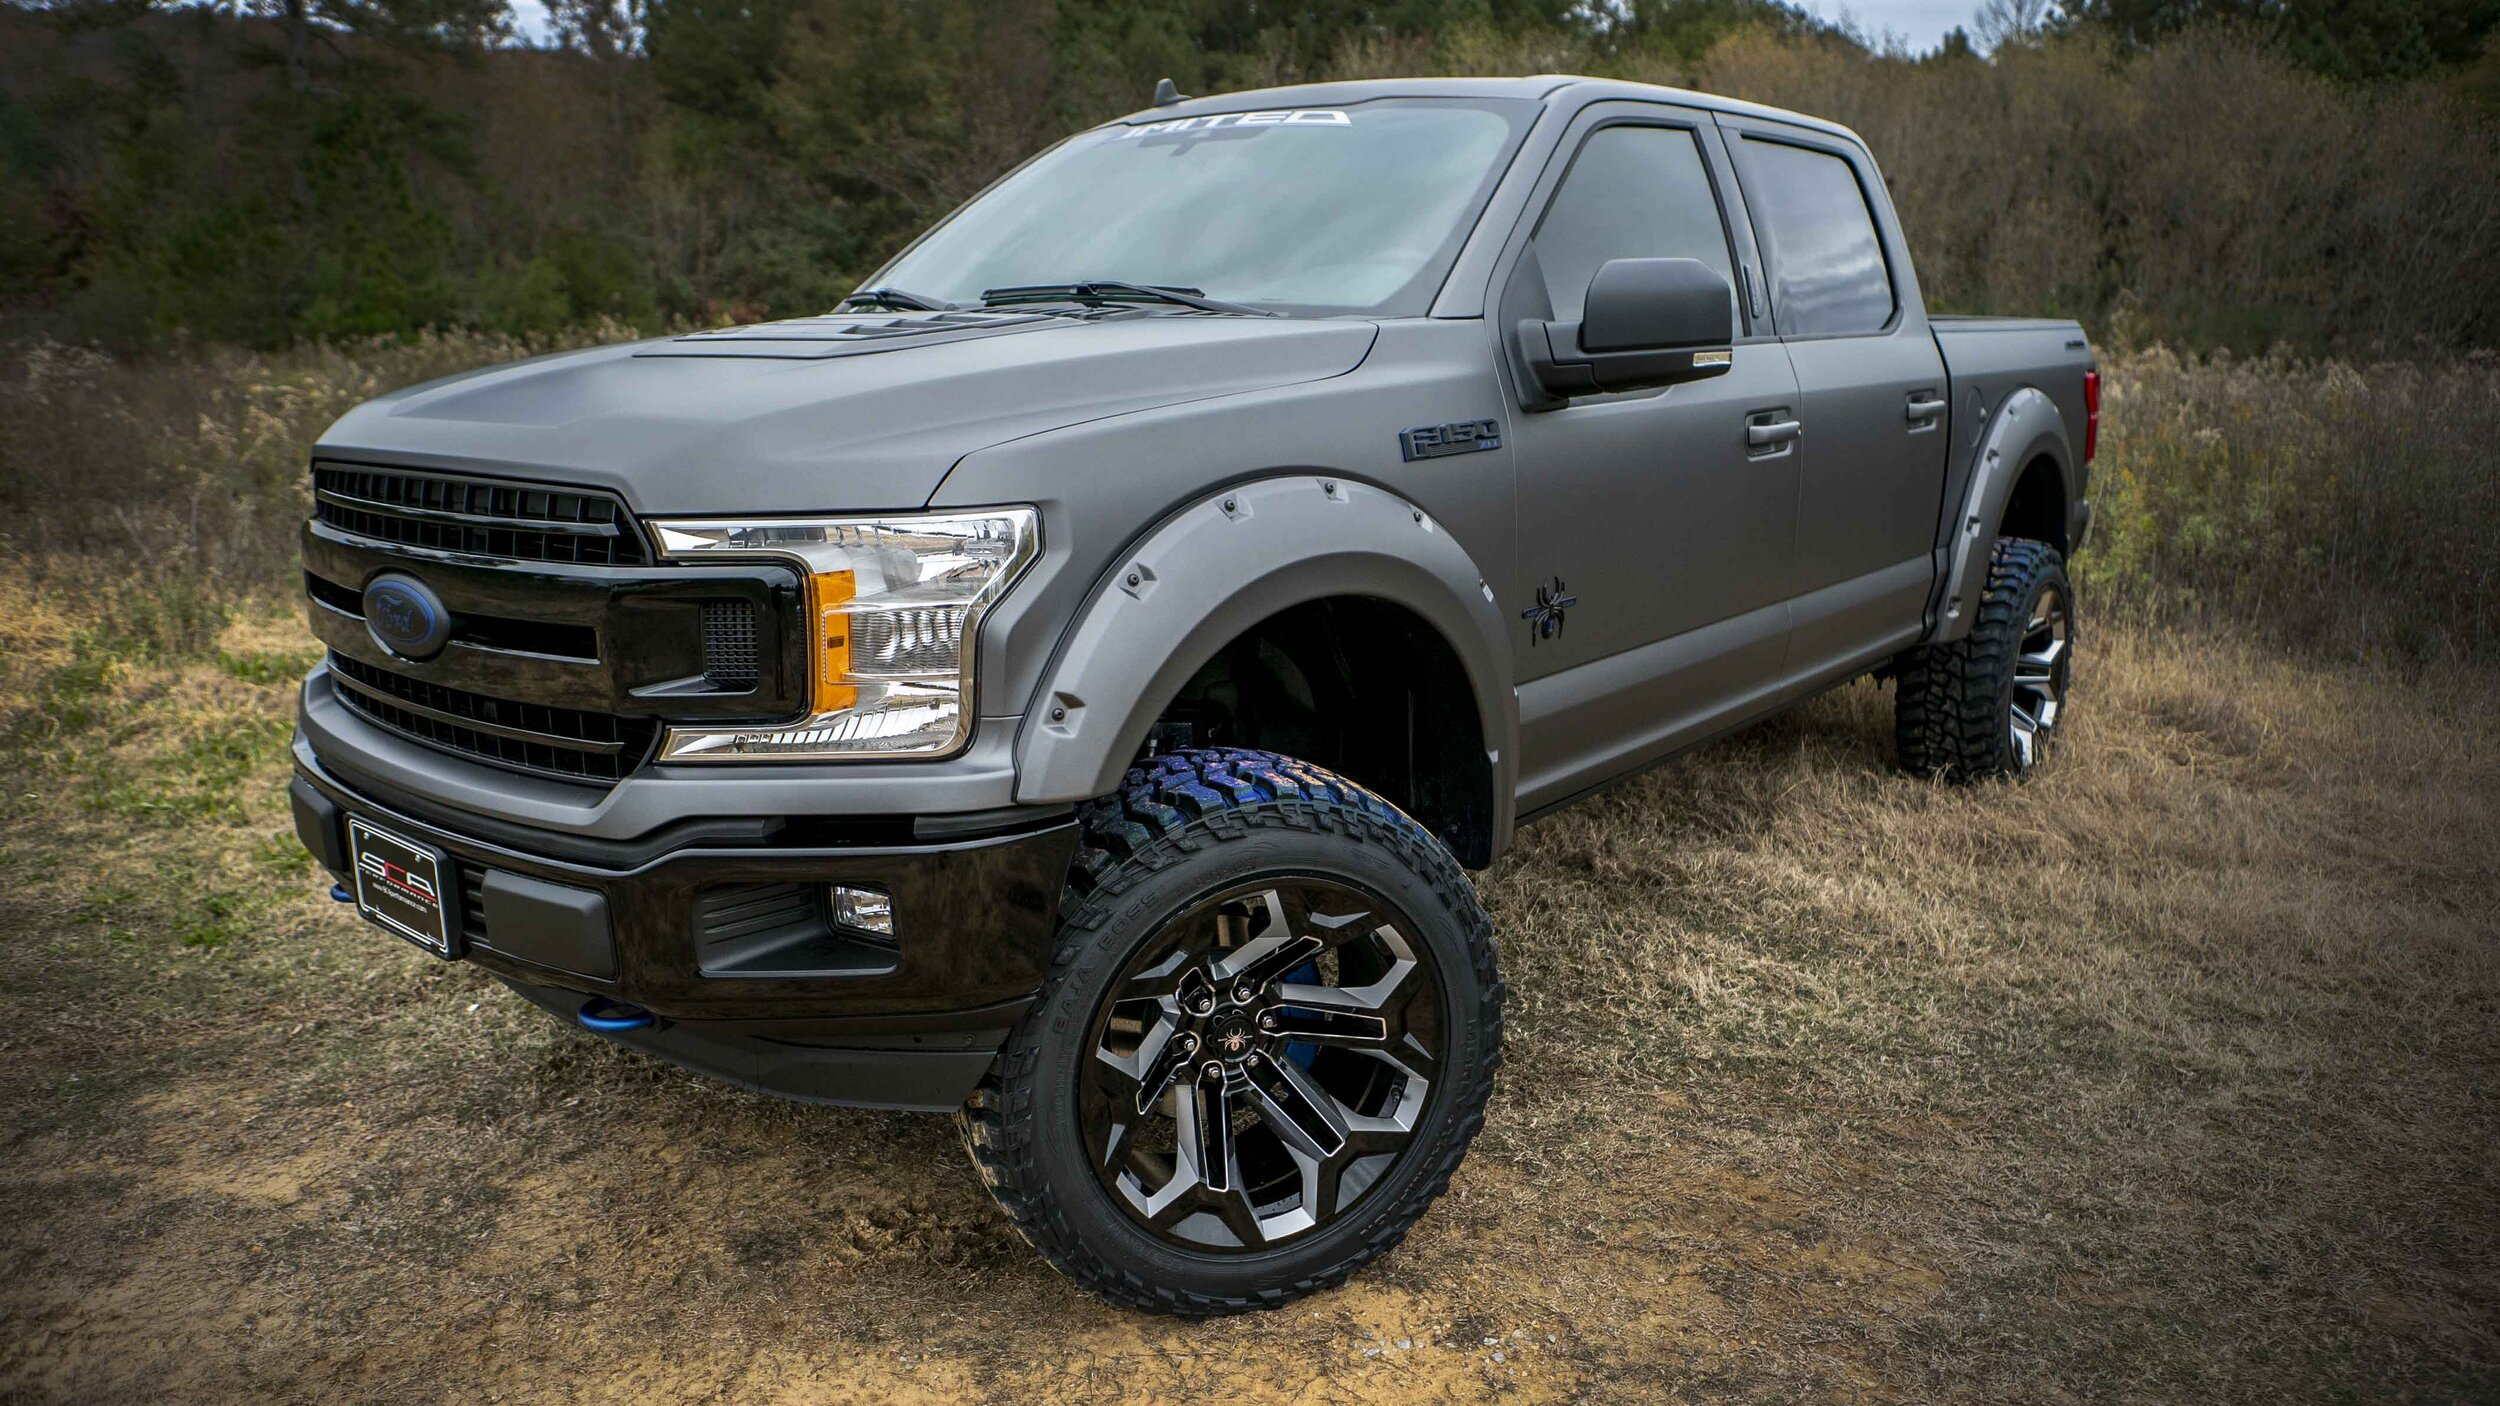 2020 Ford F-150 SuperCrew Cab 4x4, 40th Anniversary Special Edition SCA Black Widow  #200764 - photo 1